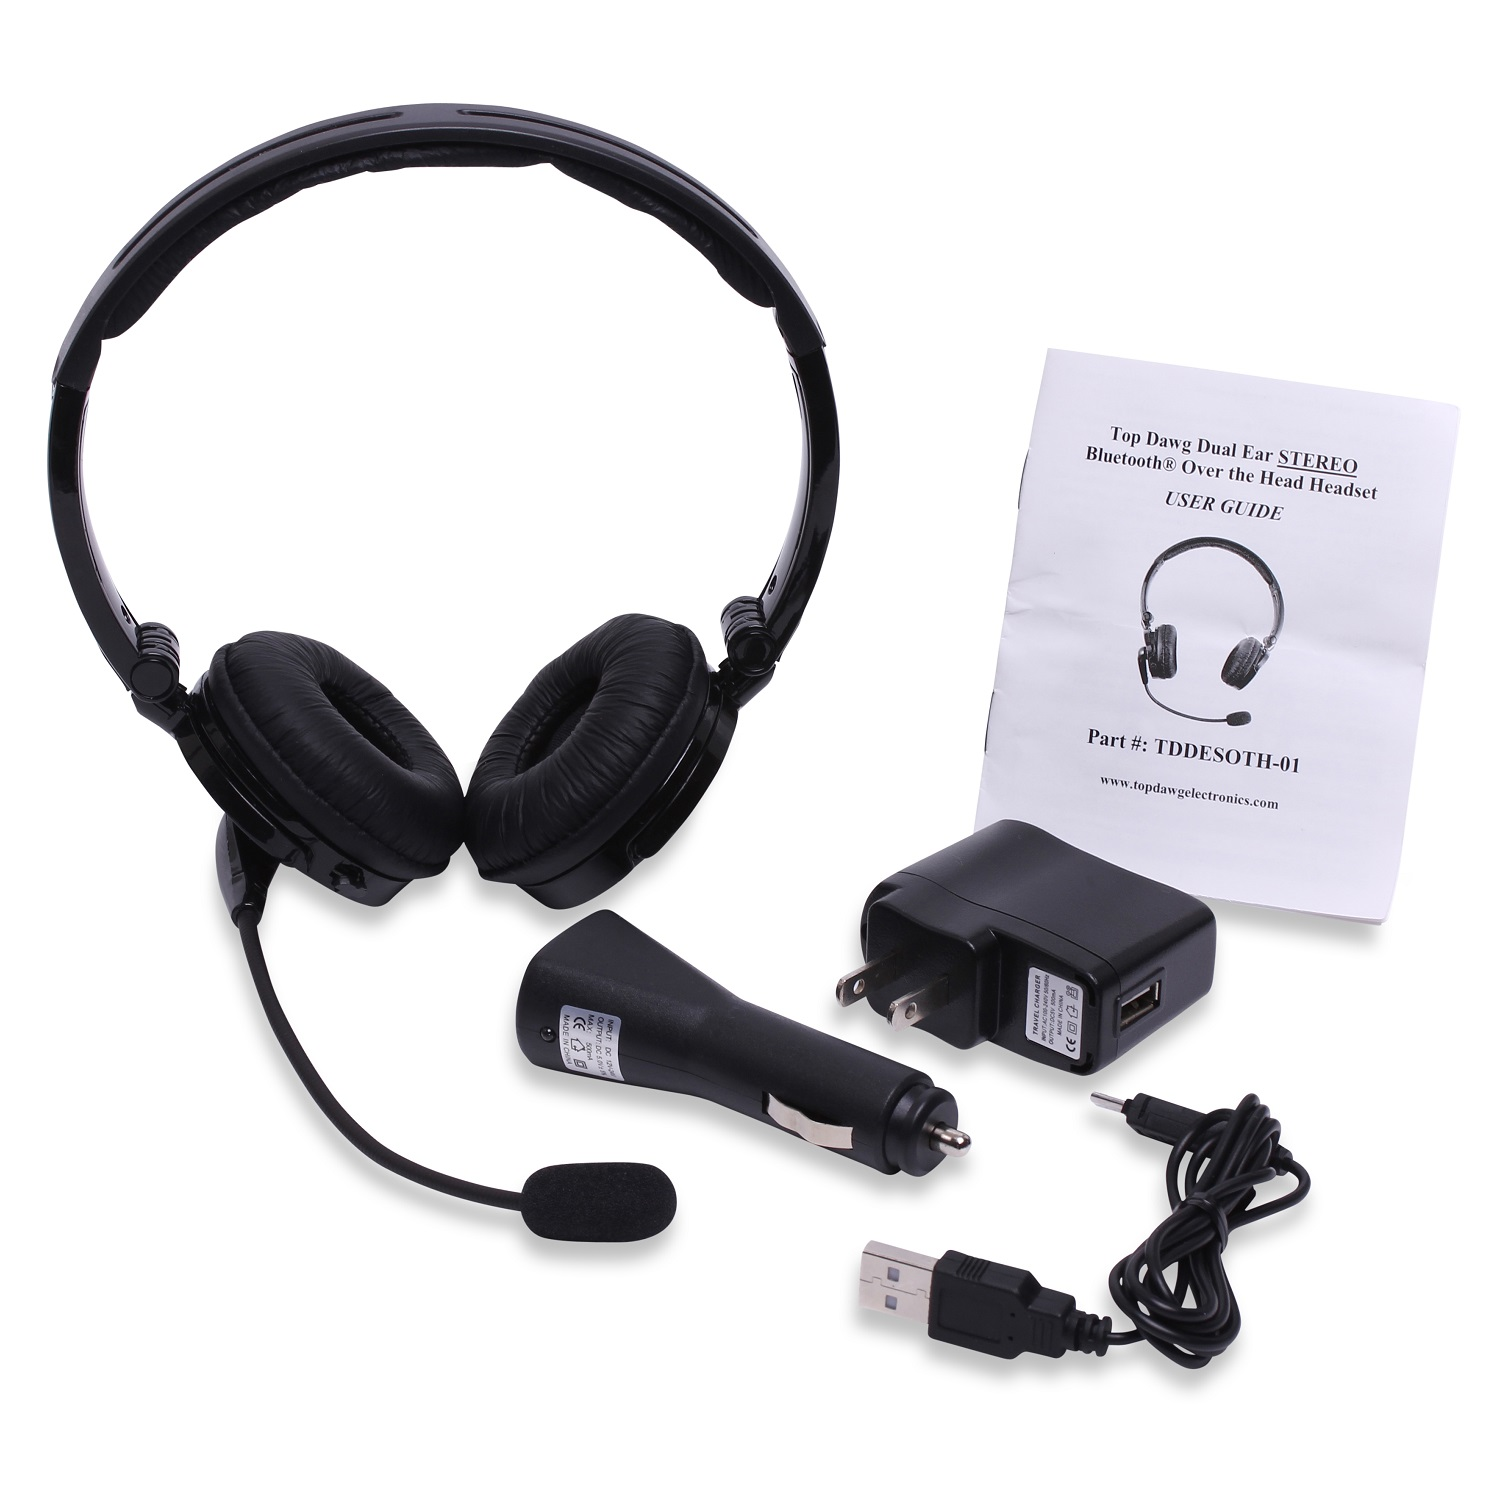 Top Dawg TDDESOTH02 2nd Generation Dual Ear Stereo Noise Canceling Bluetooth Headset